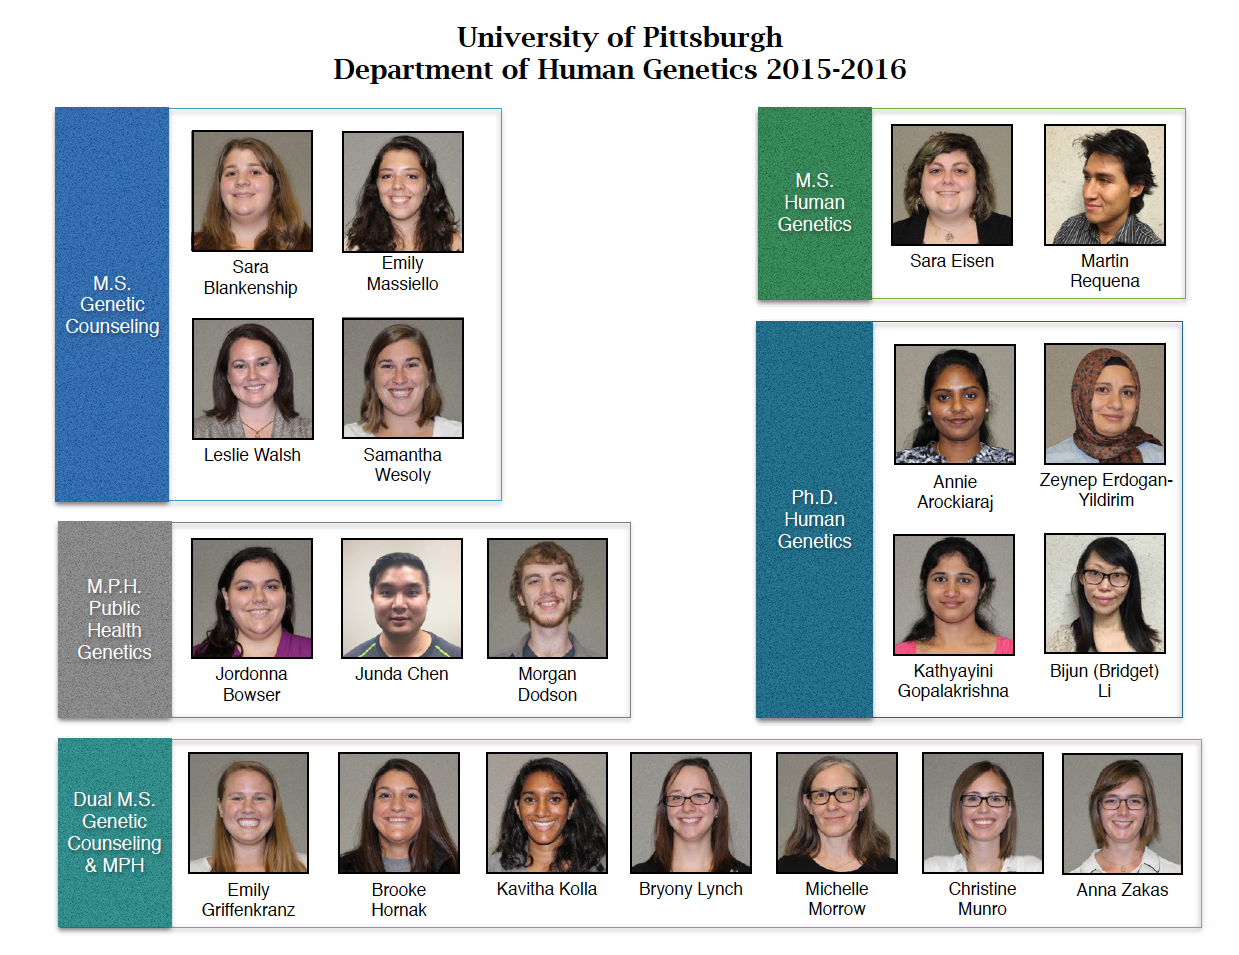 gsph mph essay Joint degree phd (anthropology)/mph program  in this new program, the student earns an mph (master of public health in behavioral and community health science) as part of the phd in anthropology.